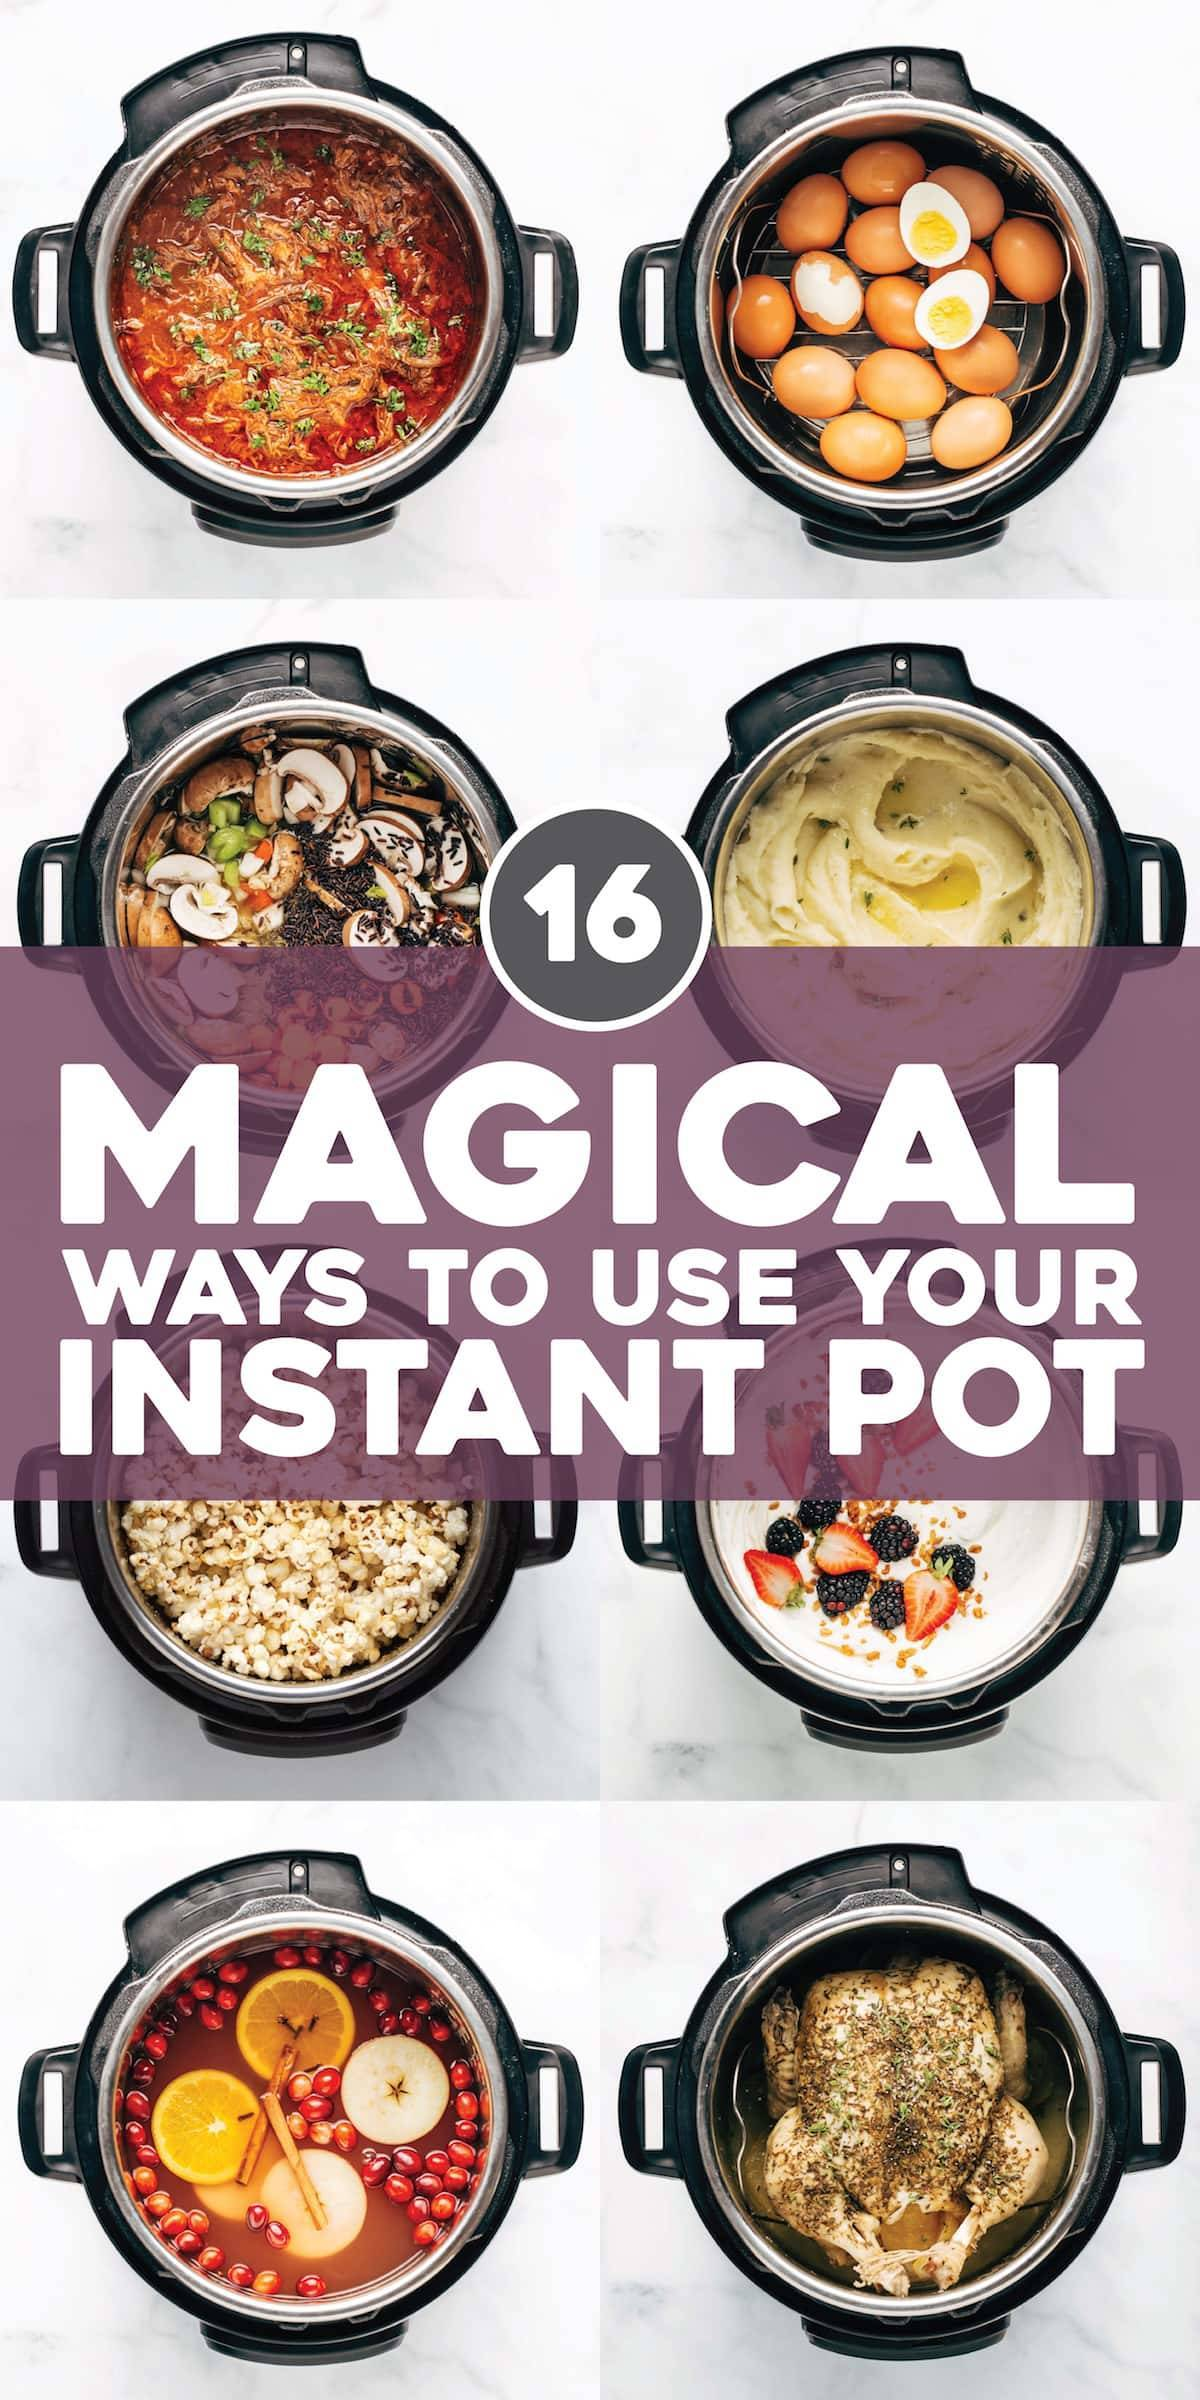 16 Magical Ways to Use Your Instant Pot.